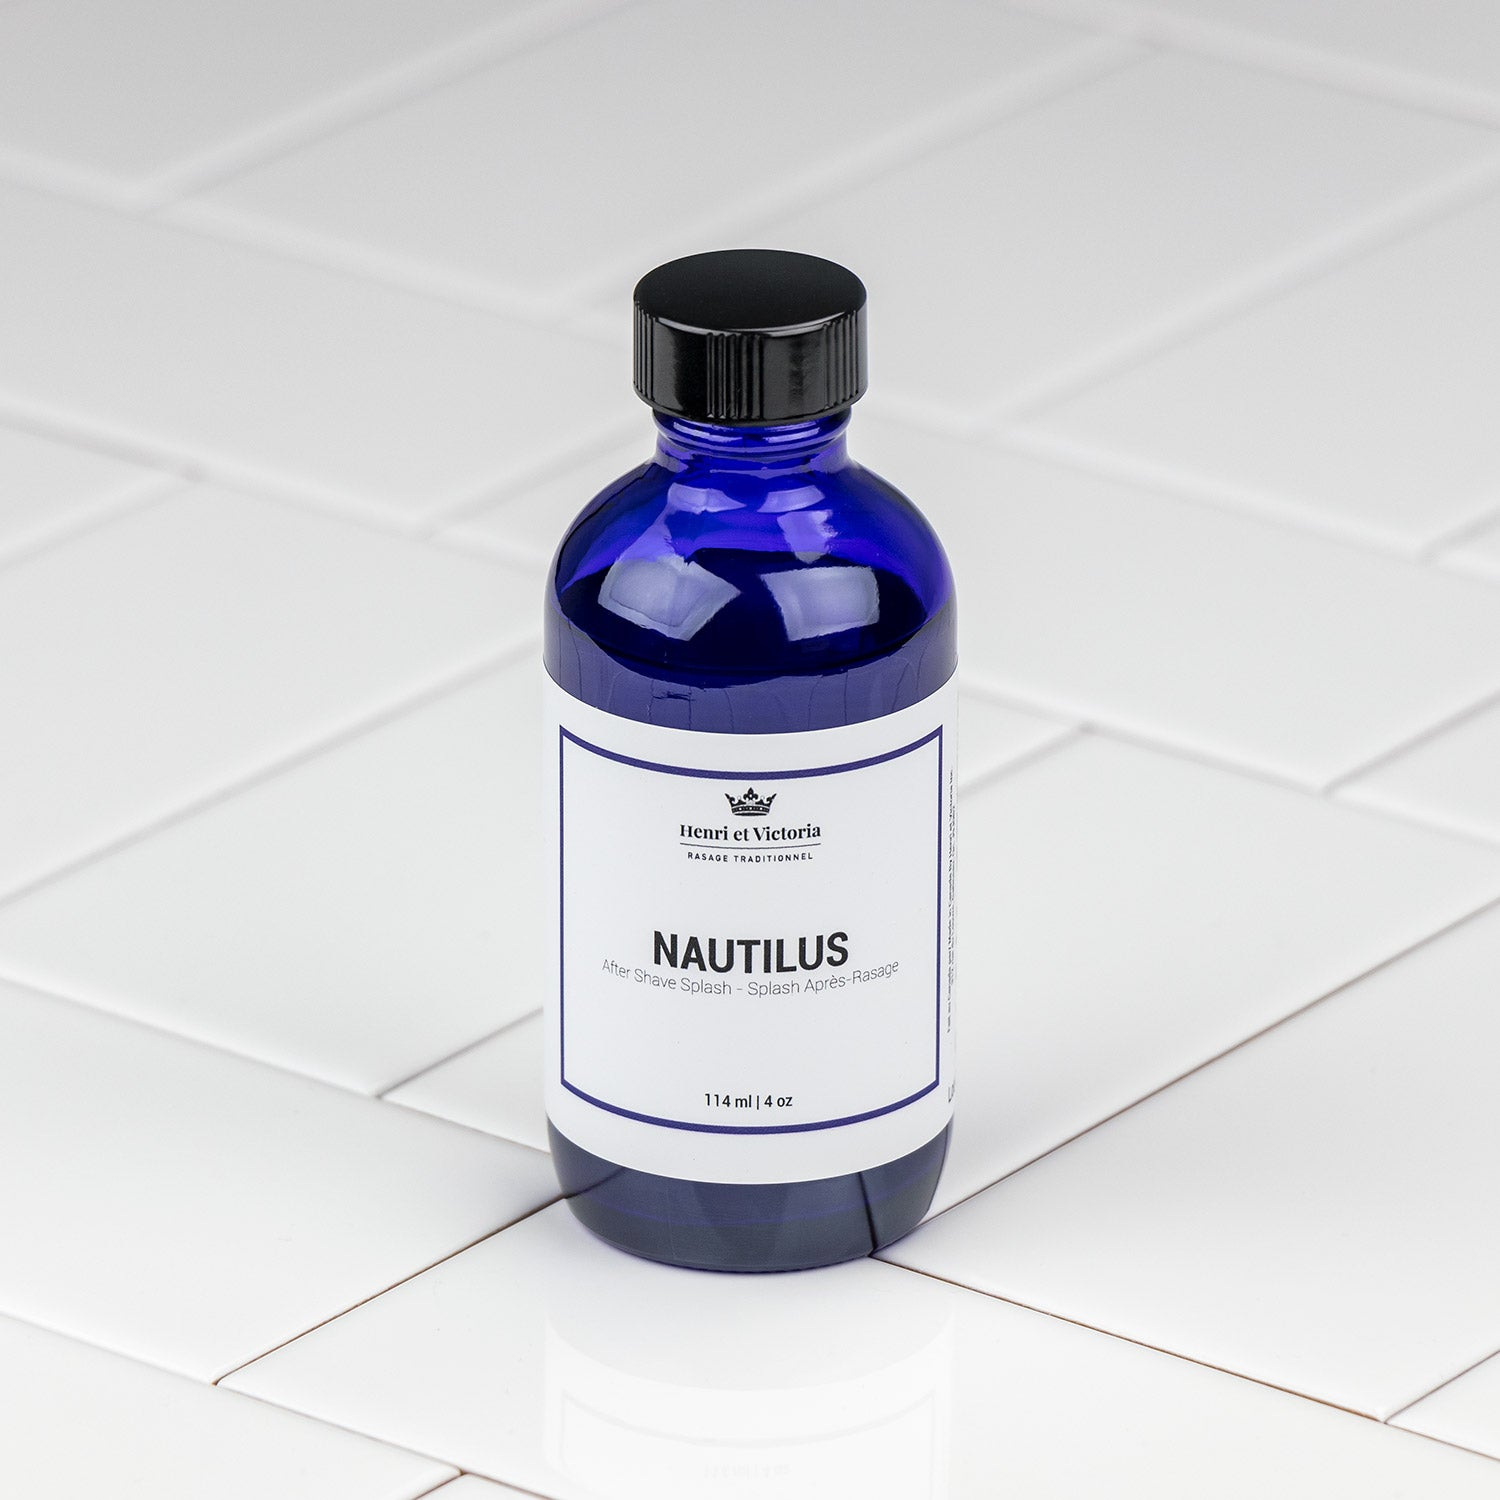 Henri et Victoria - Nautilus Aftershave Splash